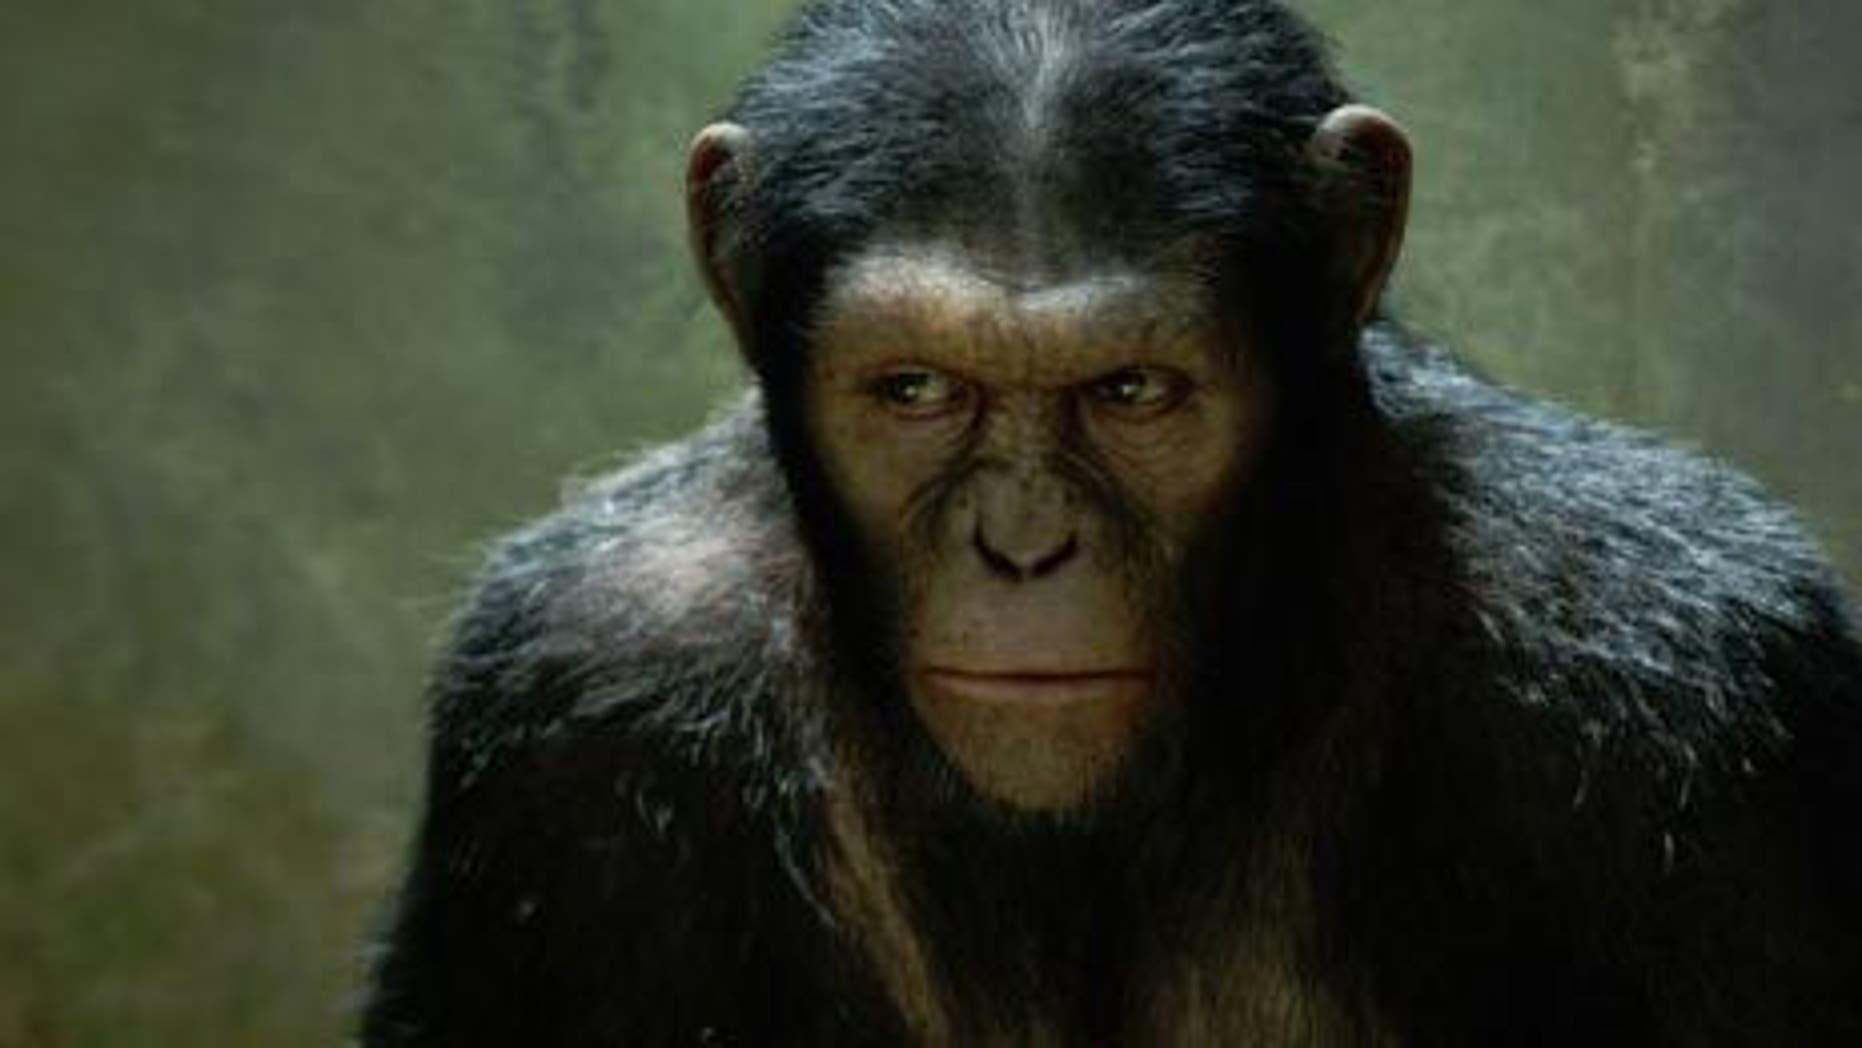 Planet of the Apes prequel Rise of the Planet of the Apes